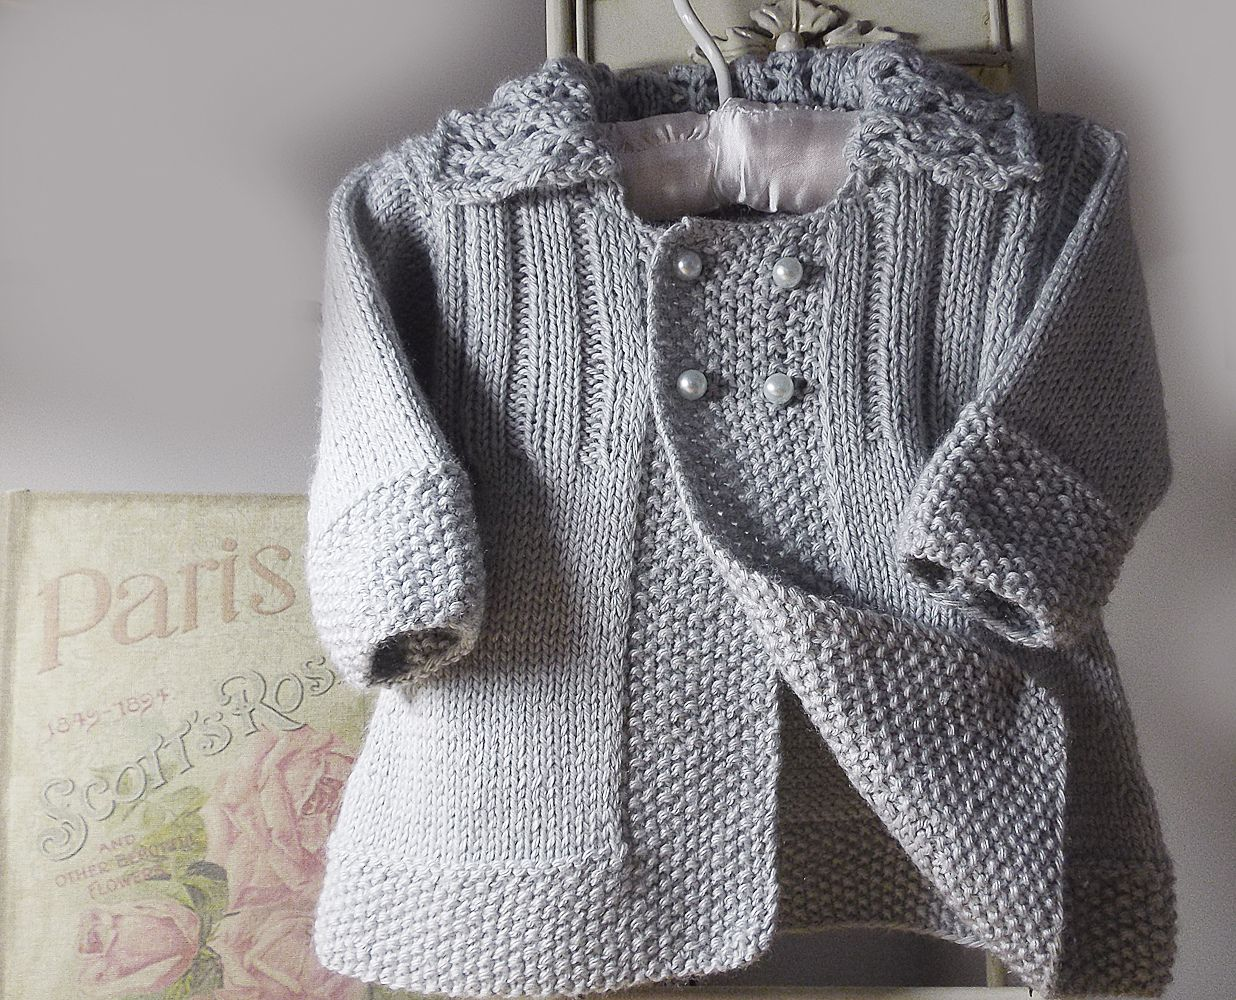 Ravelry: Baby girls jacket with lace collar P063 by OGE Knitwear Designs